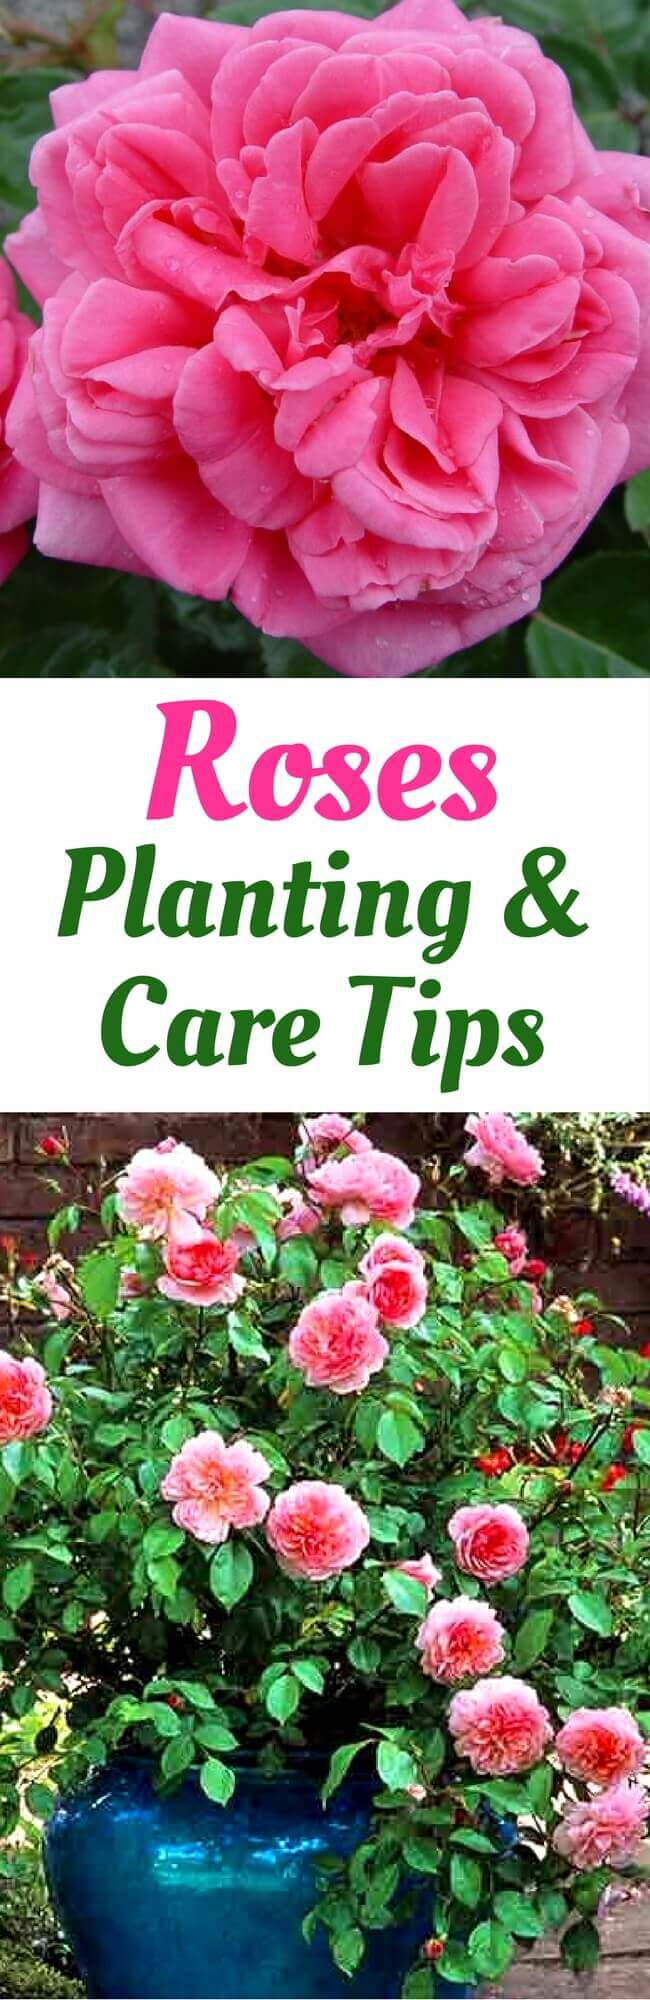 Can I Grow Rose Plant in Pot